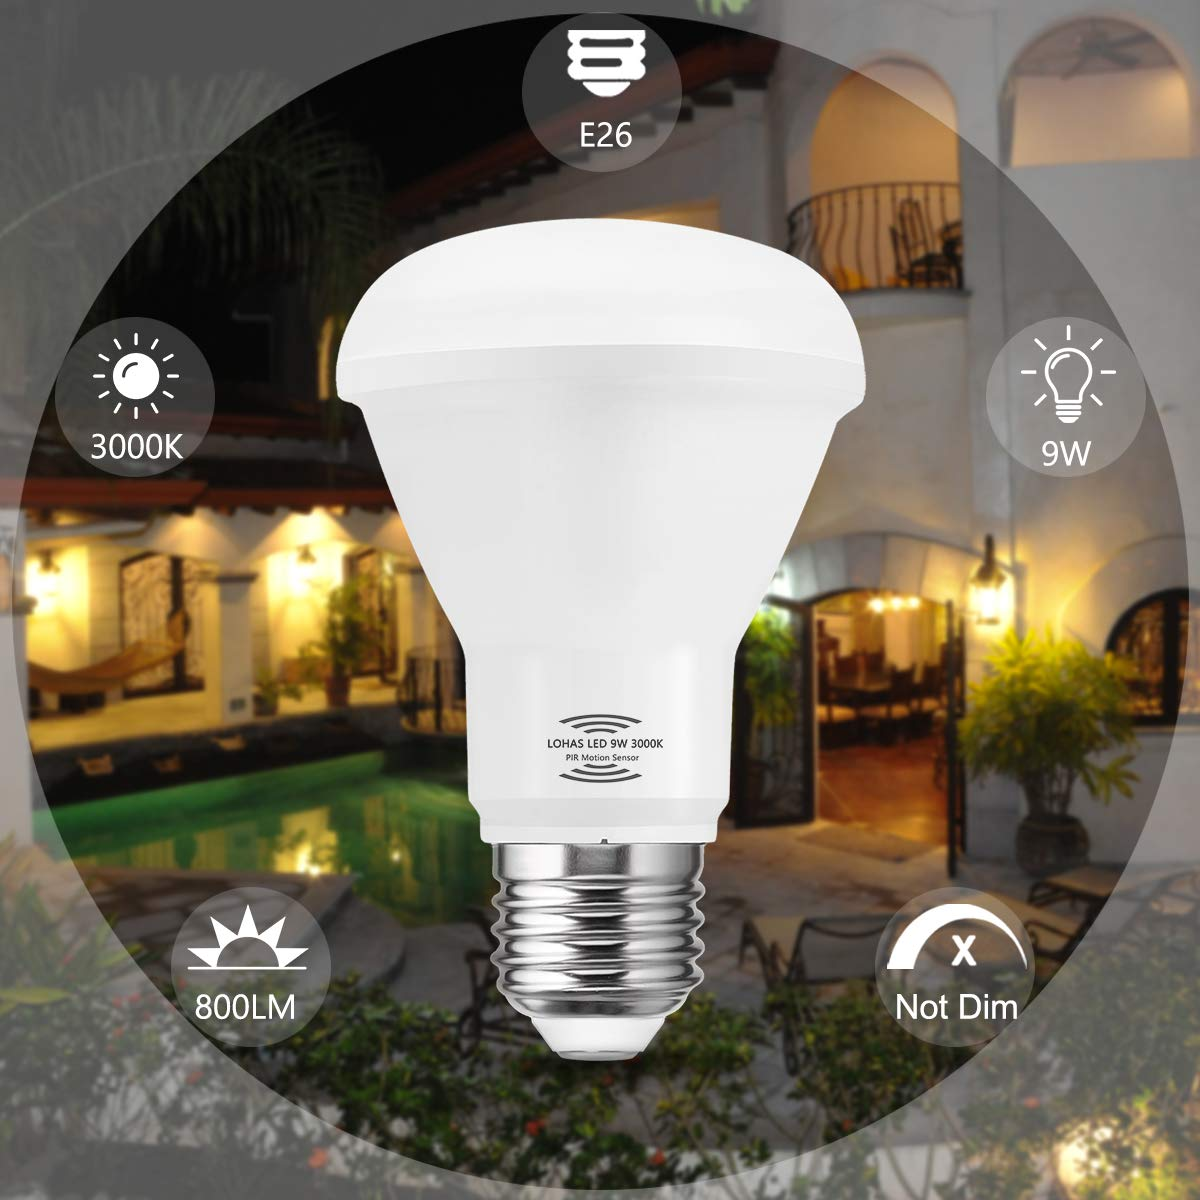 Widely Use This Sensor Light Led Light Bulb Is Suitable